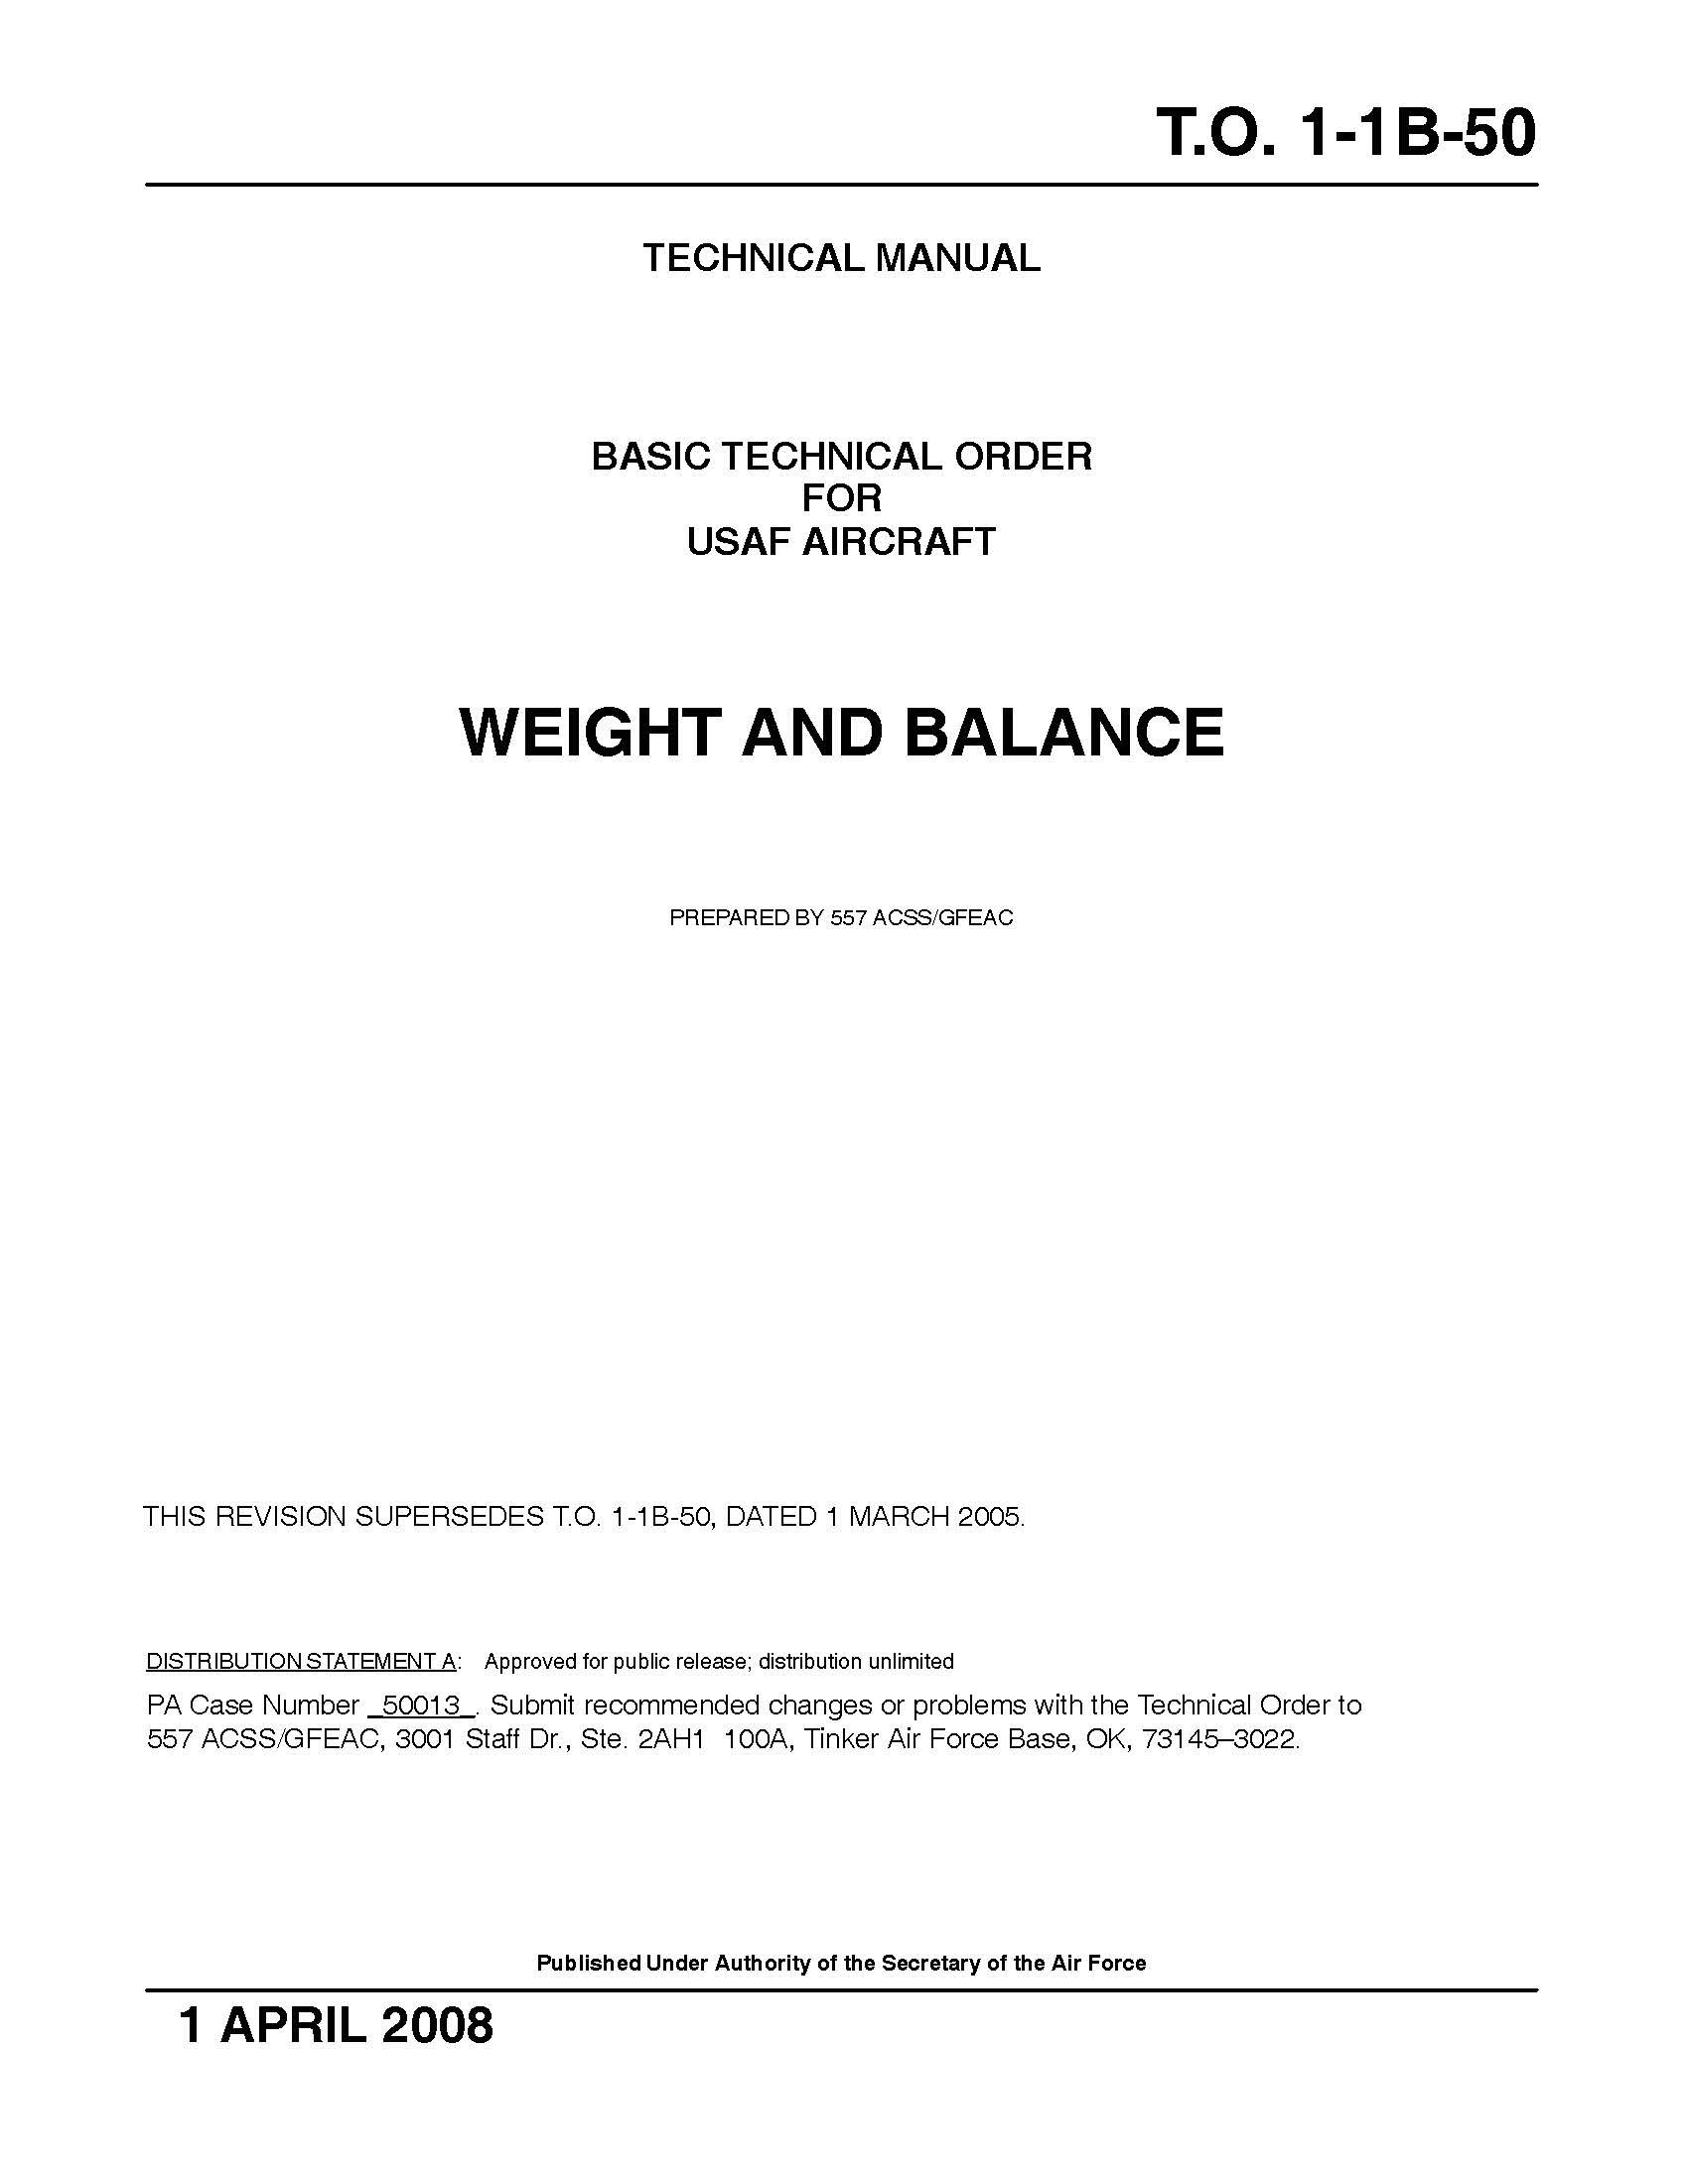 T.O. 1-1B-50 Aircraft WEIGHT AND BALANCE Basic Technical Order for USAF  Aircraft 2005: U.S. Air Force: Amazon.com: Books